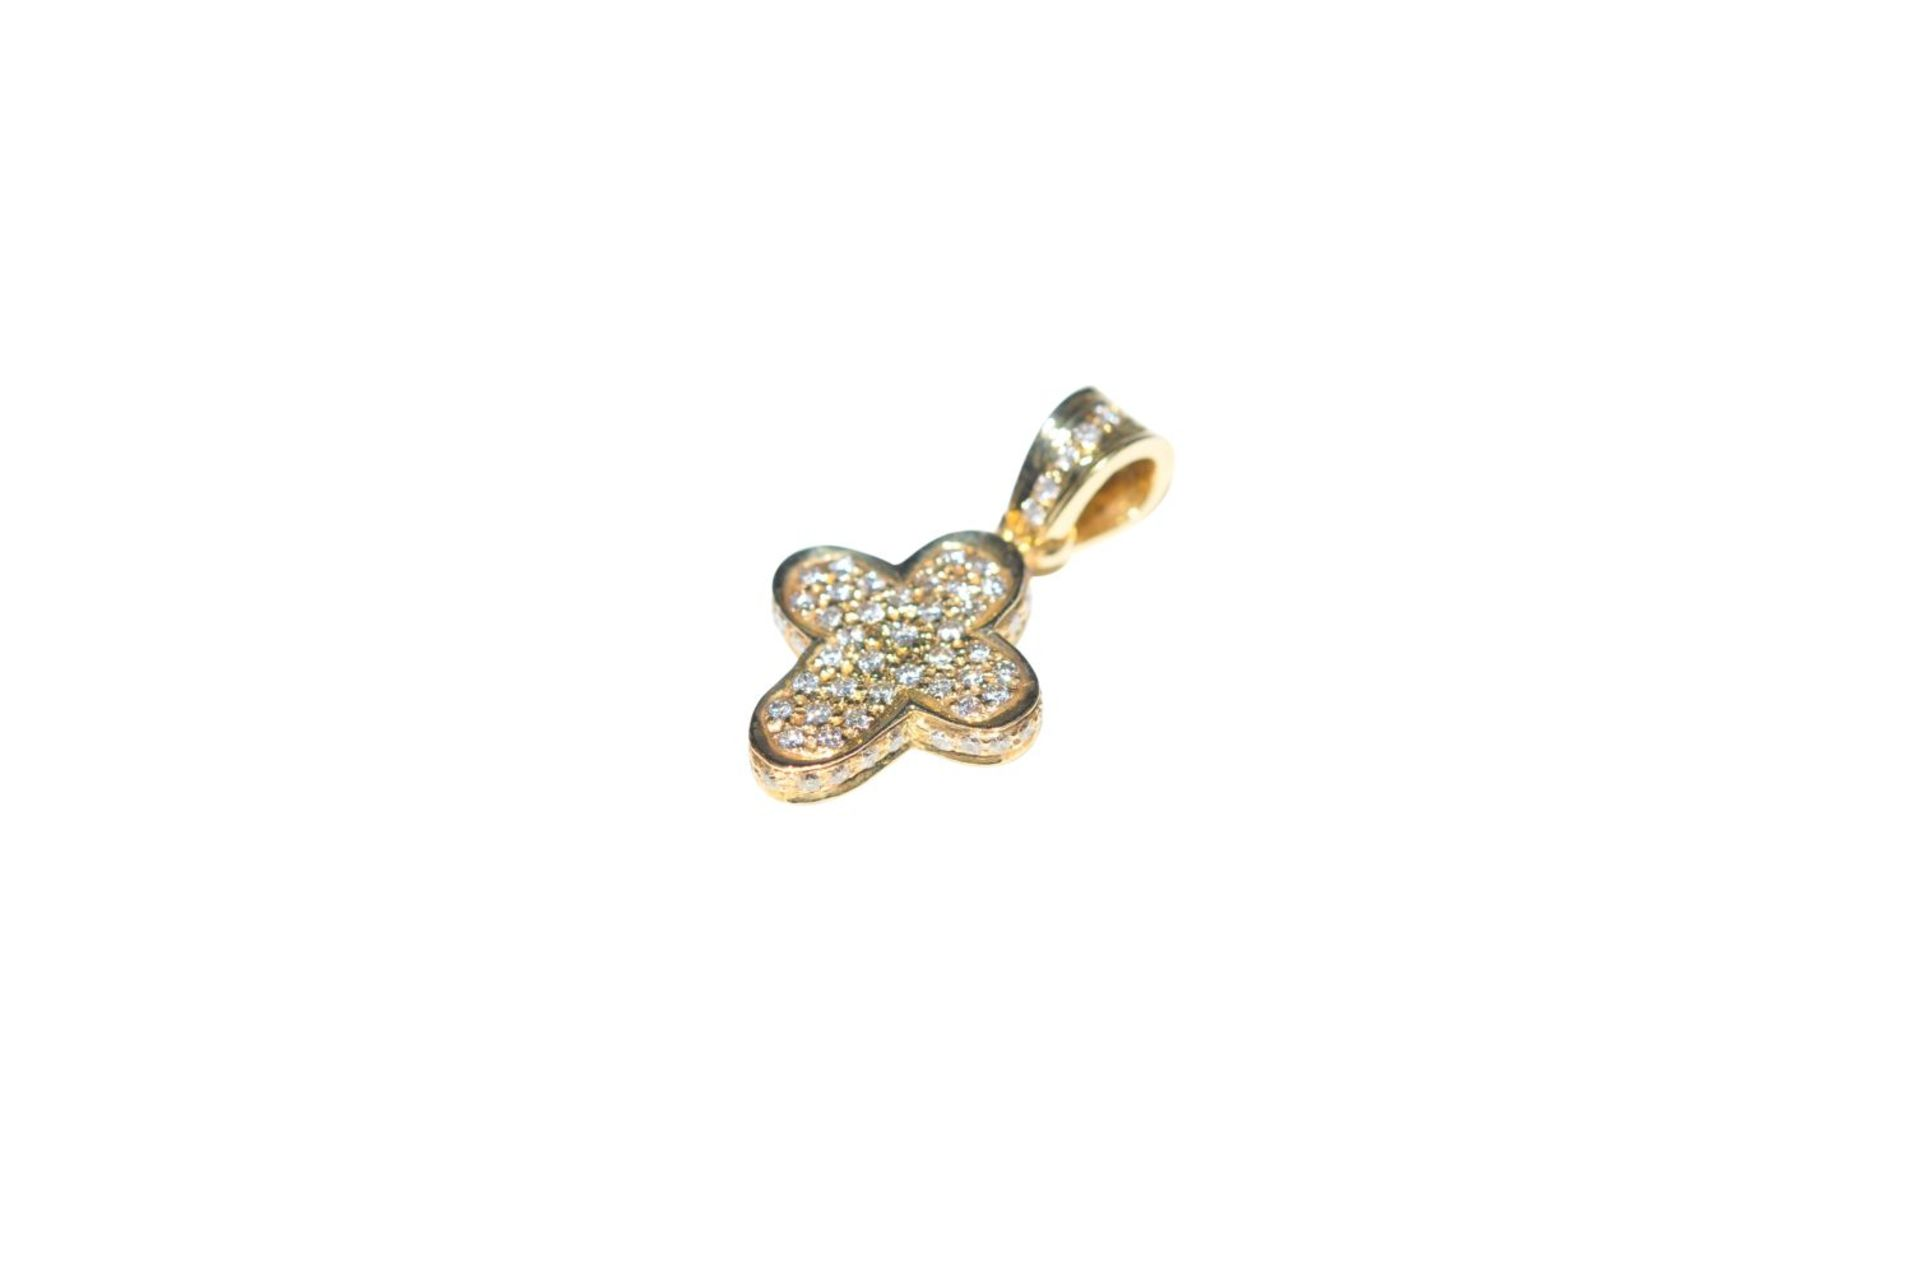 Los 100 - Diamond cross pendantGolden cross pendant, 18kt, with diamonds, approx. 0.92ct, total weight 2.